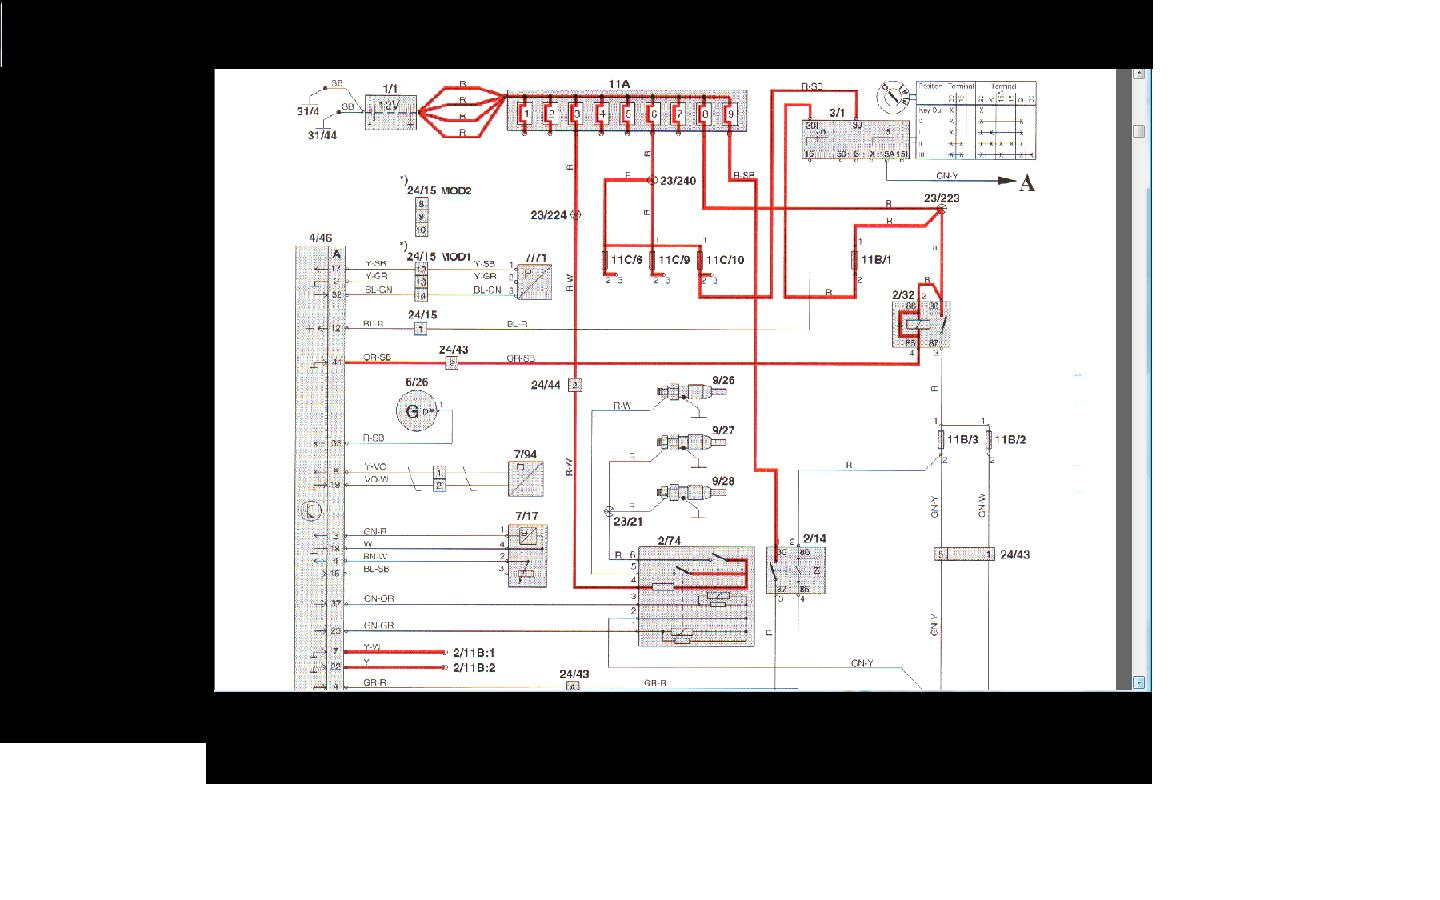 Volvo C30 Wiring Diagram Great Design Of 740 Headlight Tachometer Koolertron Backup Camera